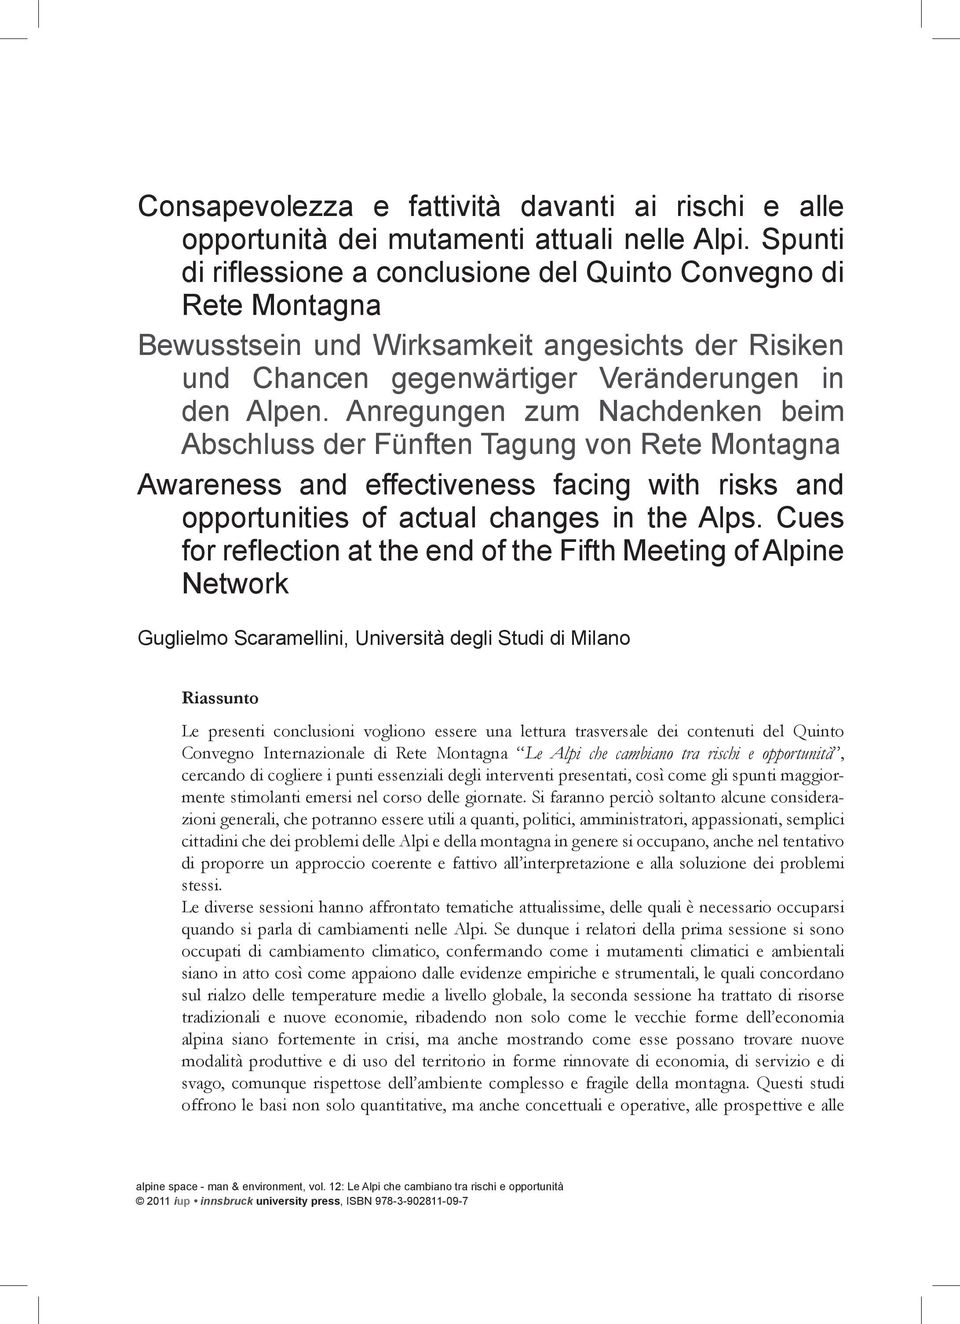 Anregungen zum Nachdenken beim Abschluss der Fünften Tagung von Rete Montagna Awareness and effectiveness facing with risks and opportunities of actual changes in the Alps.